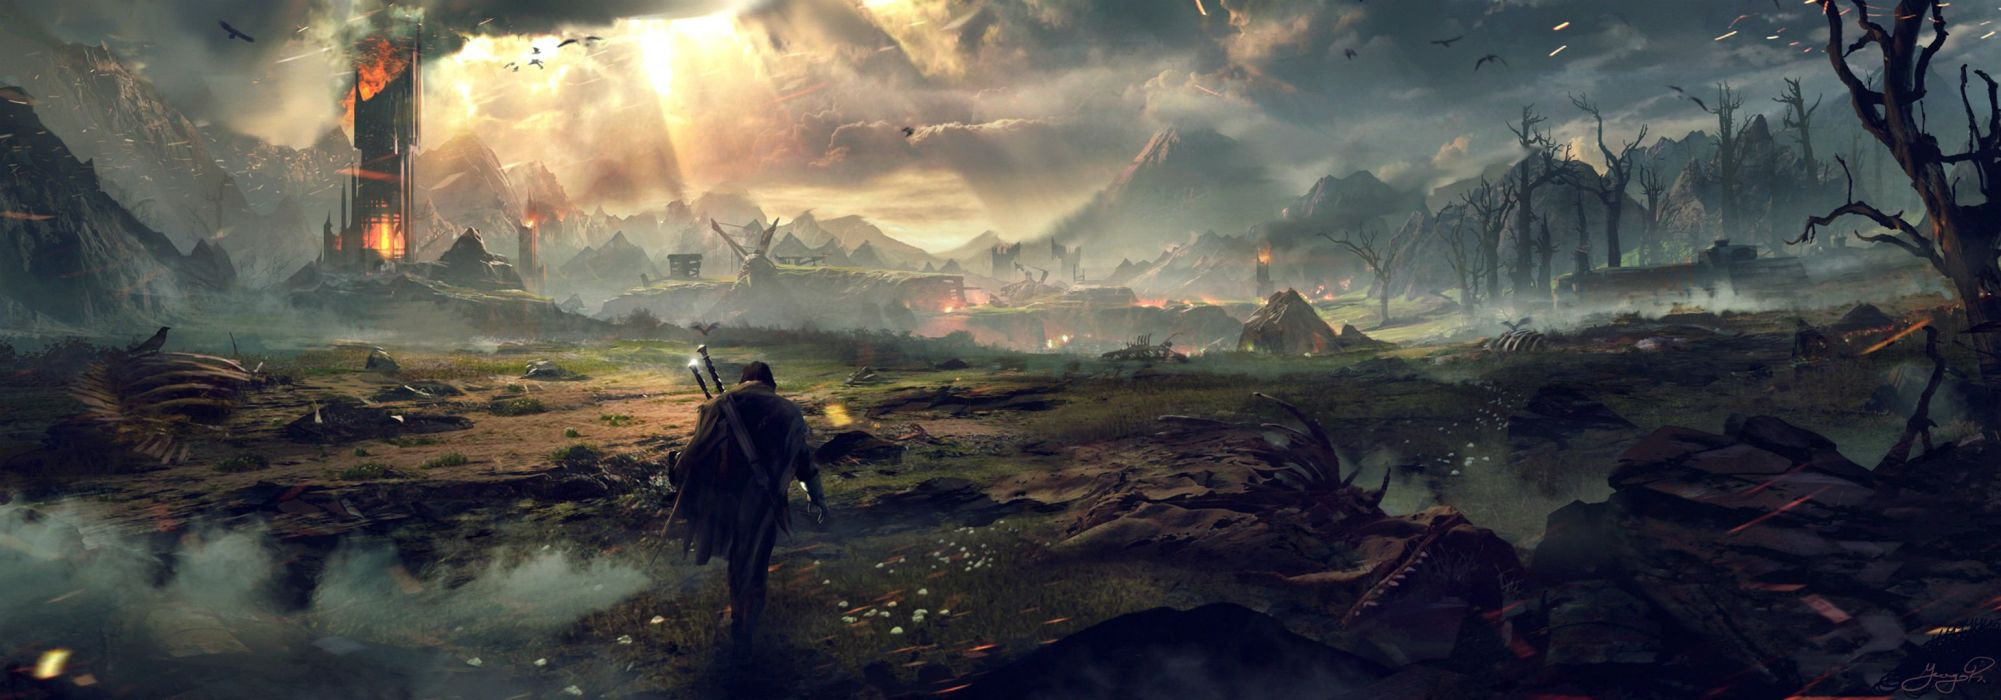 MIDDLE EARTH SHADOW MORDOR action adventure fantasy lotr lord rings warrior online (28) wallpaper